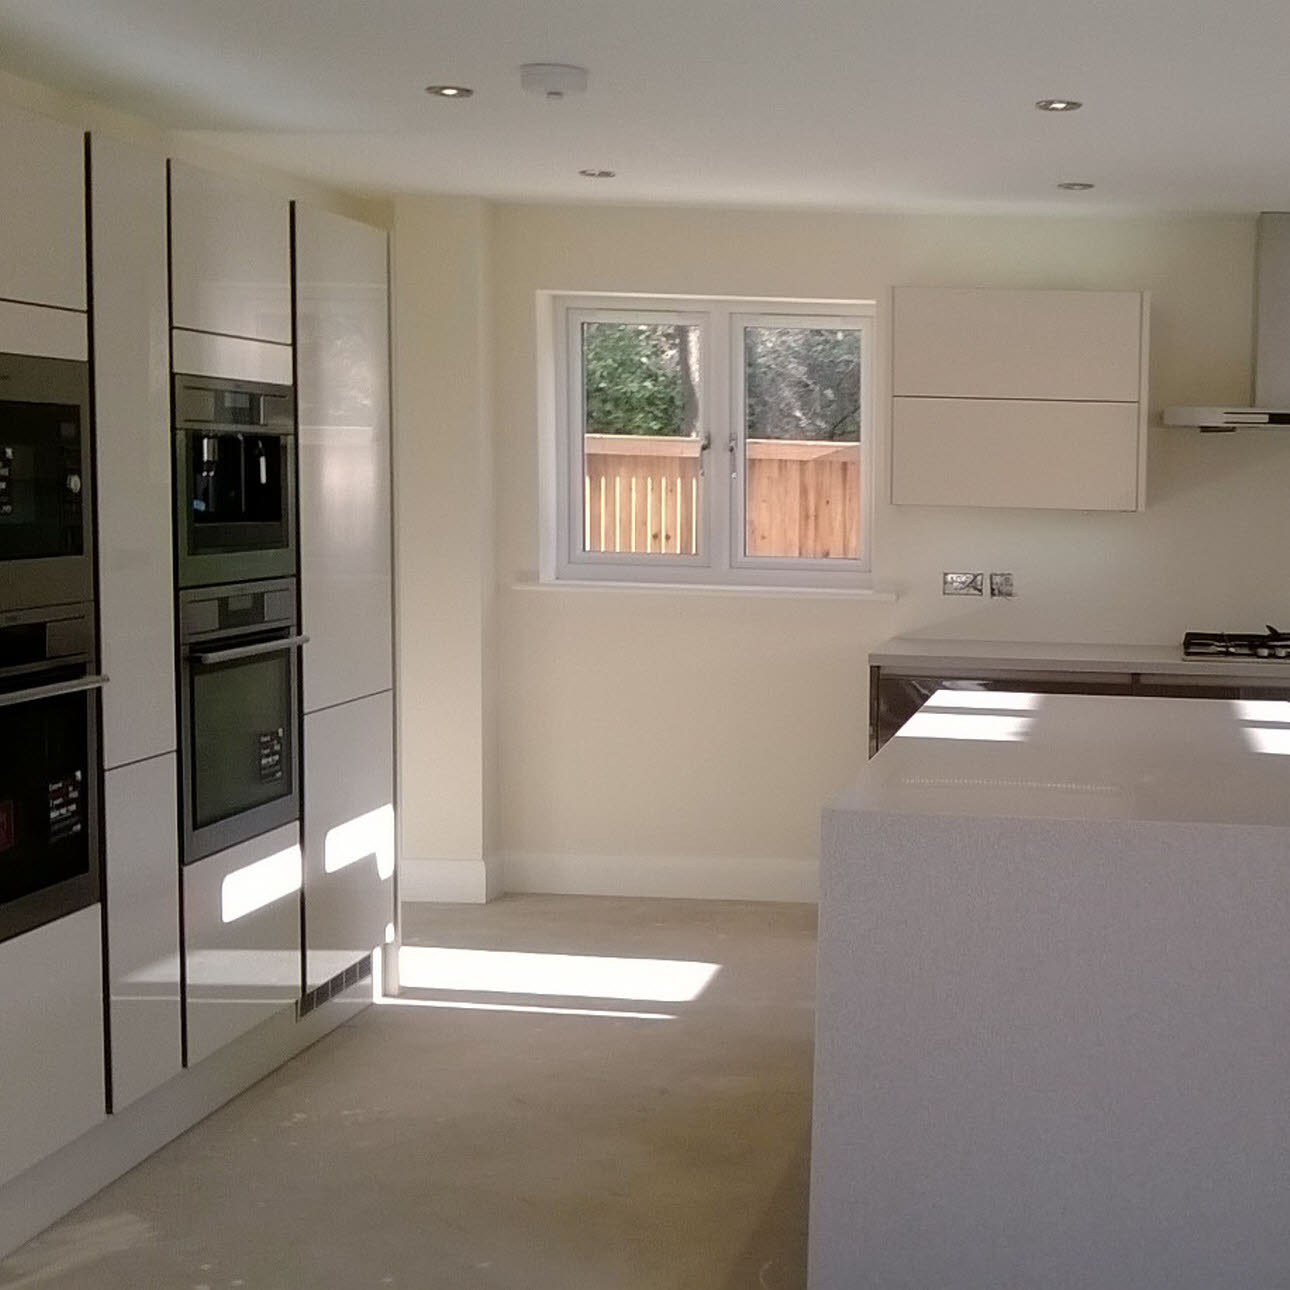 Kitchen Taps Ipswich Contract Kitchens News Home Development Magnet Trade